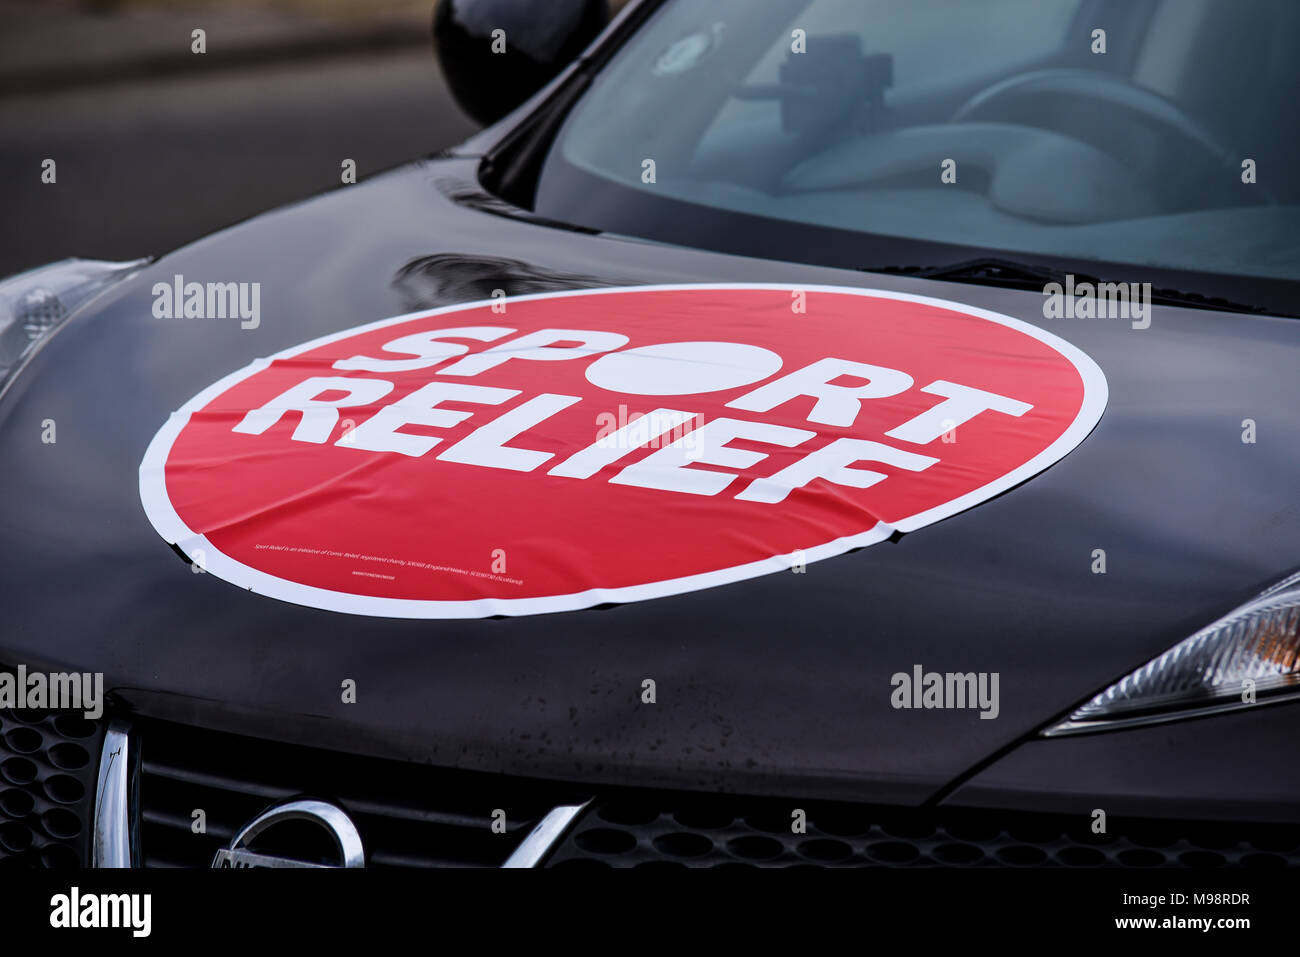 Sport Relief Logo Sticker Badly Stuck To The Bonnet Of A Nissan Juke